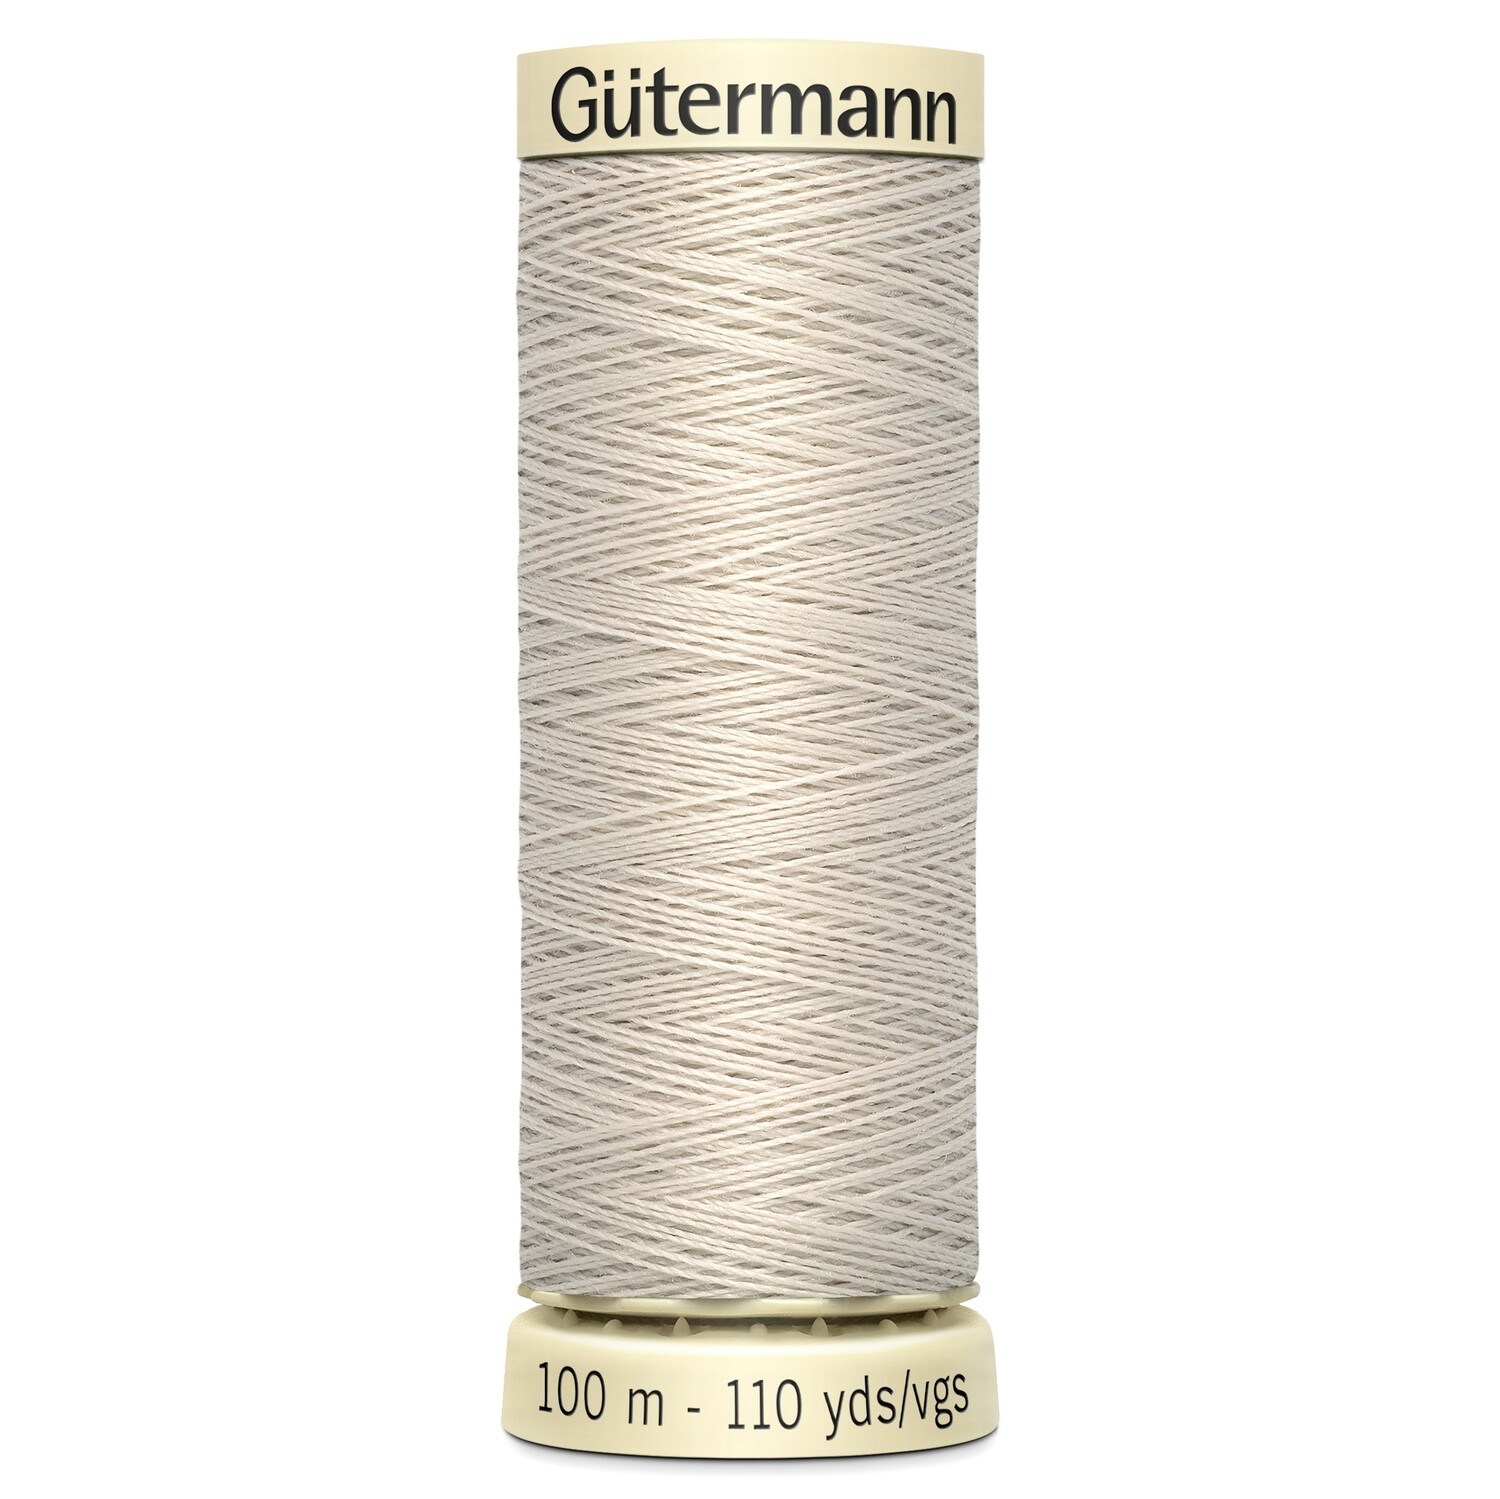 Gutermann Sew-All thread 299